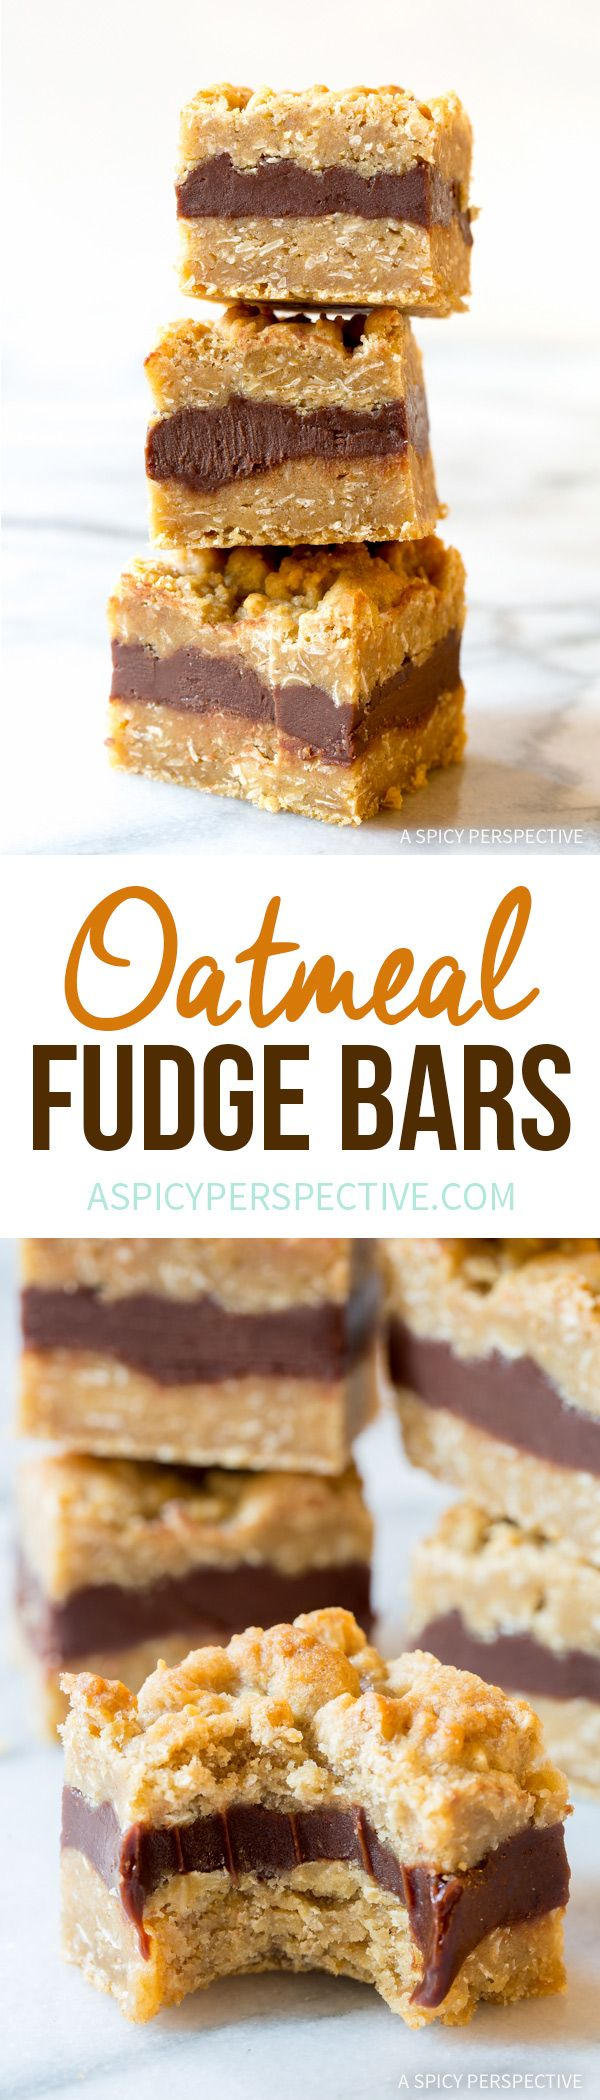 Ridiculously Delicious Oatmeal Fudge Bars Recipe | ASpicyPerspective.com via @spicyperspectiv